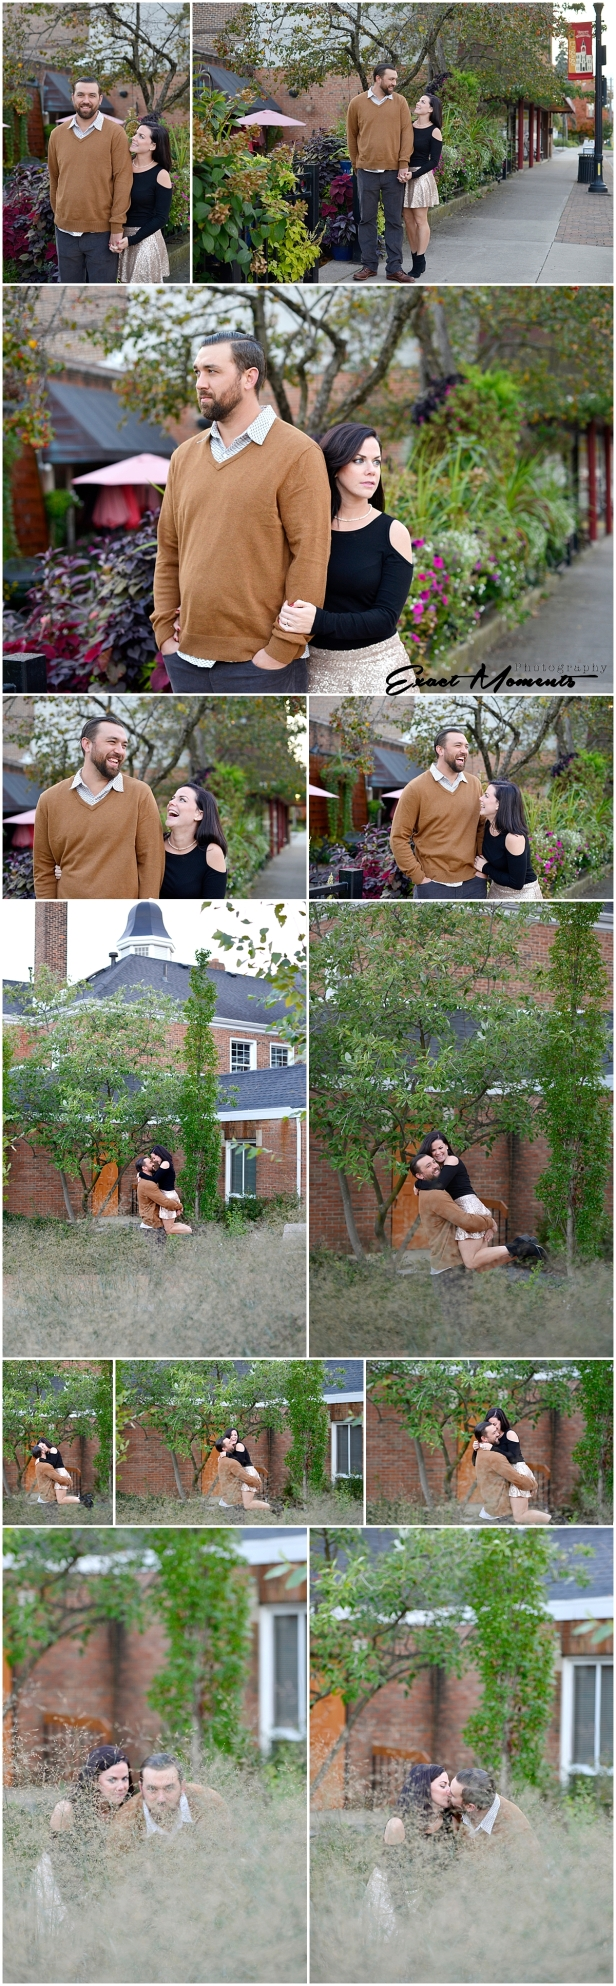 engagement-session-photographer-columbus-ohio